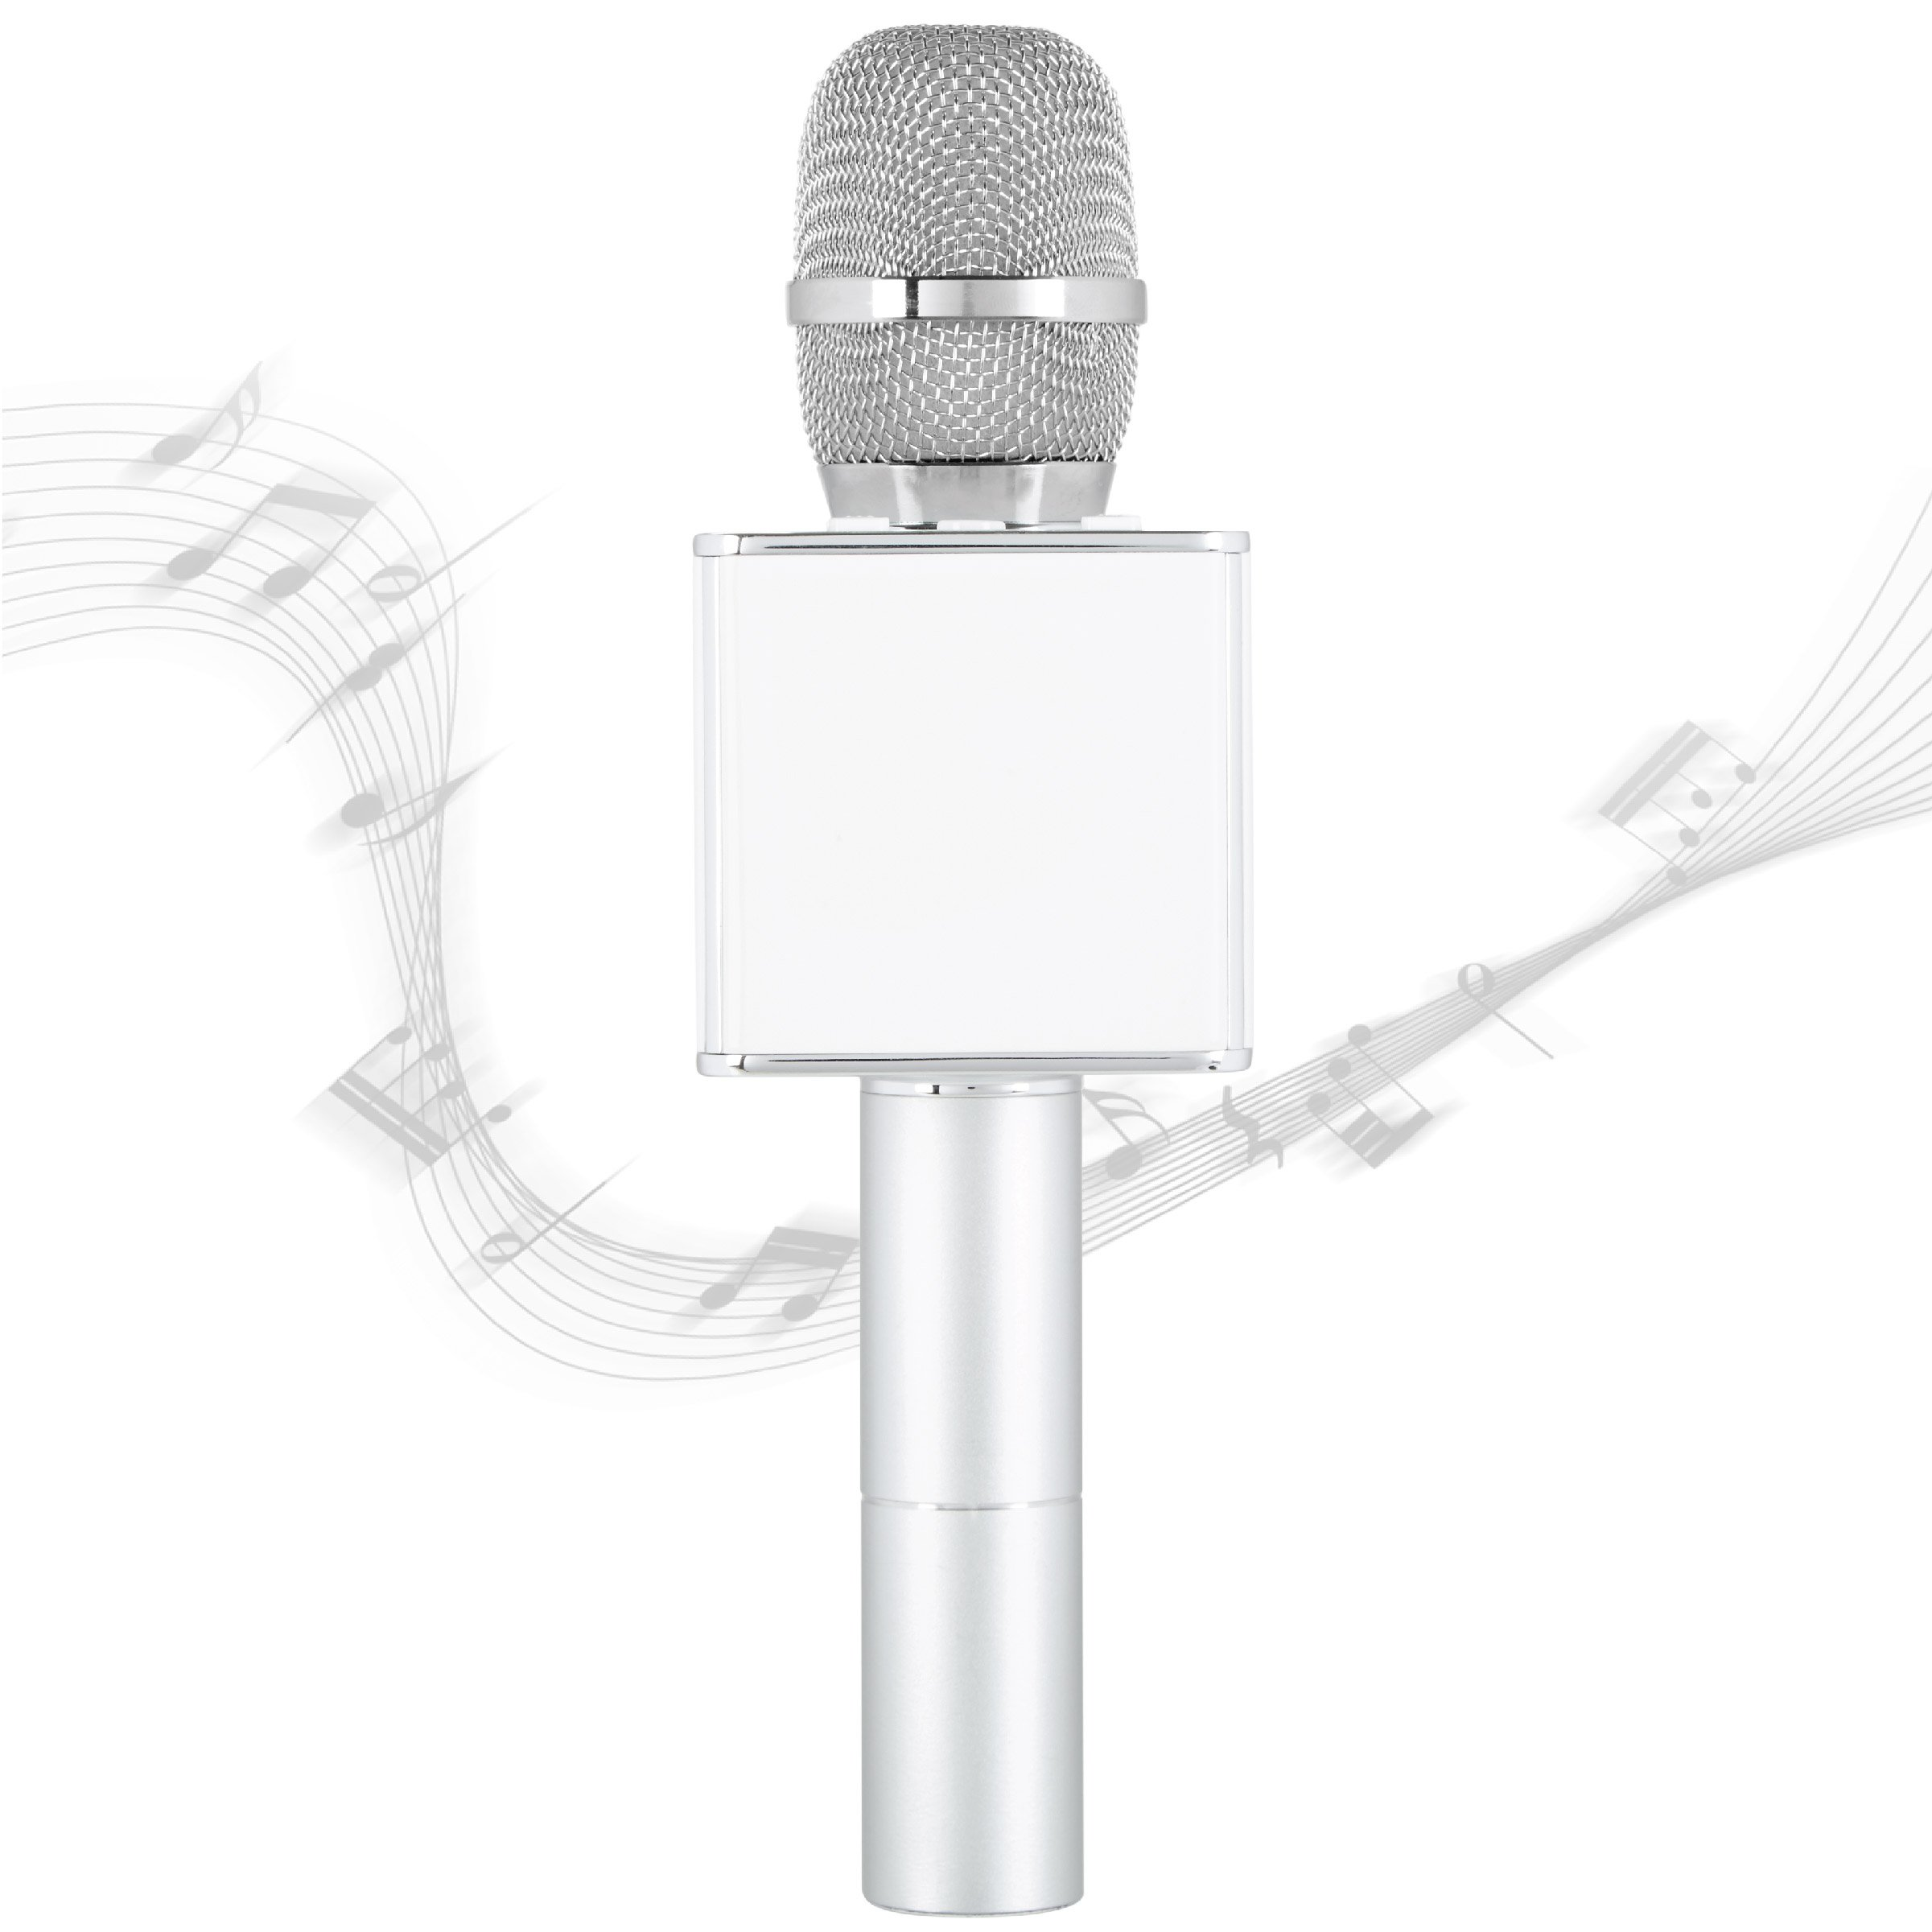 SHARPER IMAGE Bluetooth Music Stream Karaoke Microphone with Built-in Speaker, Bluetooth & Smartphone Compatible, Silver by Sharper Image